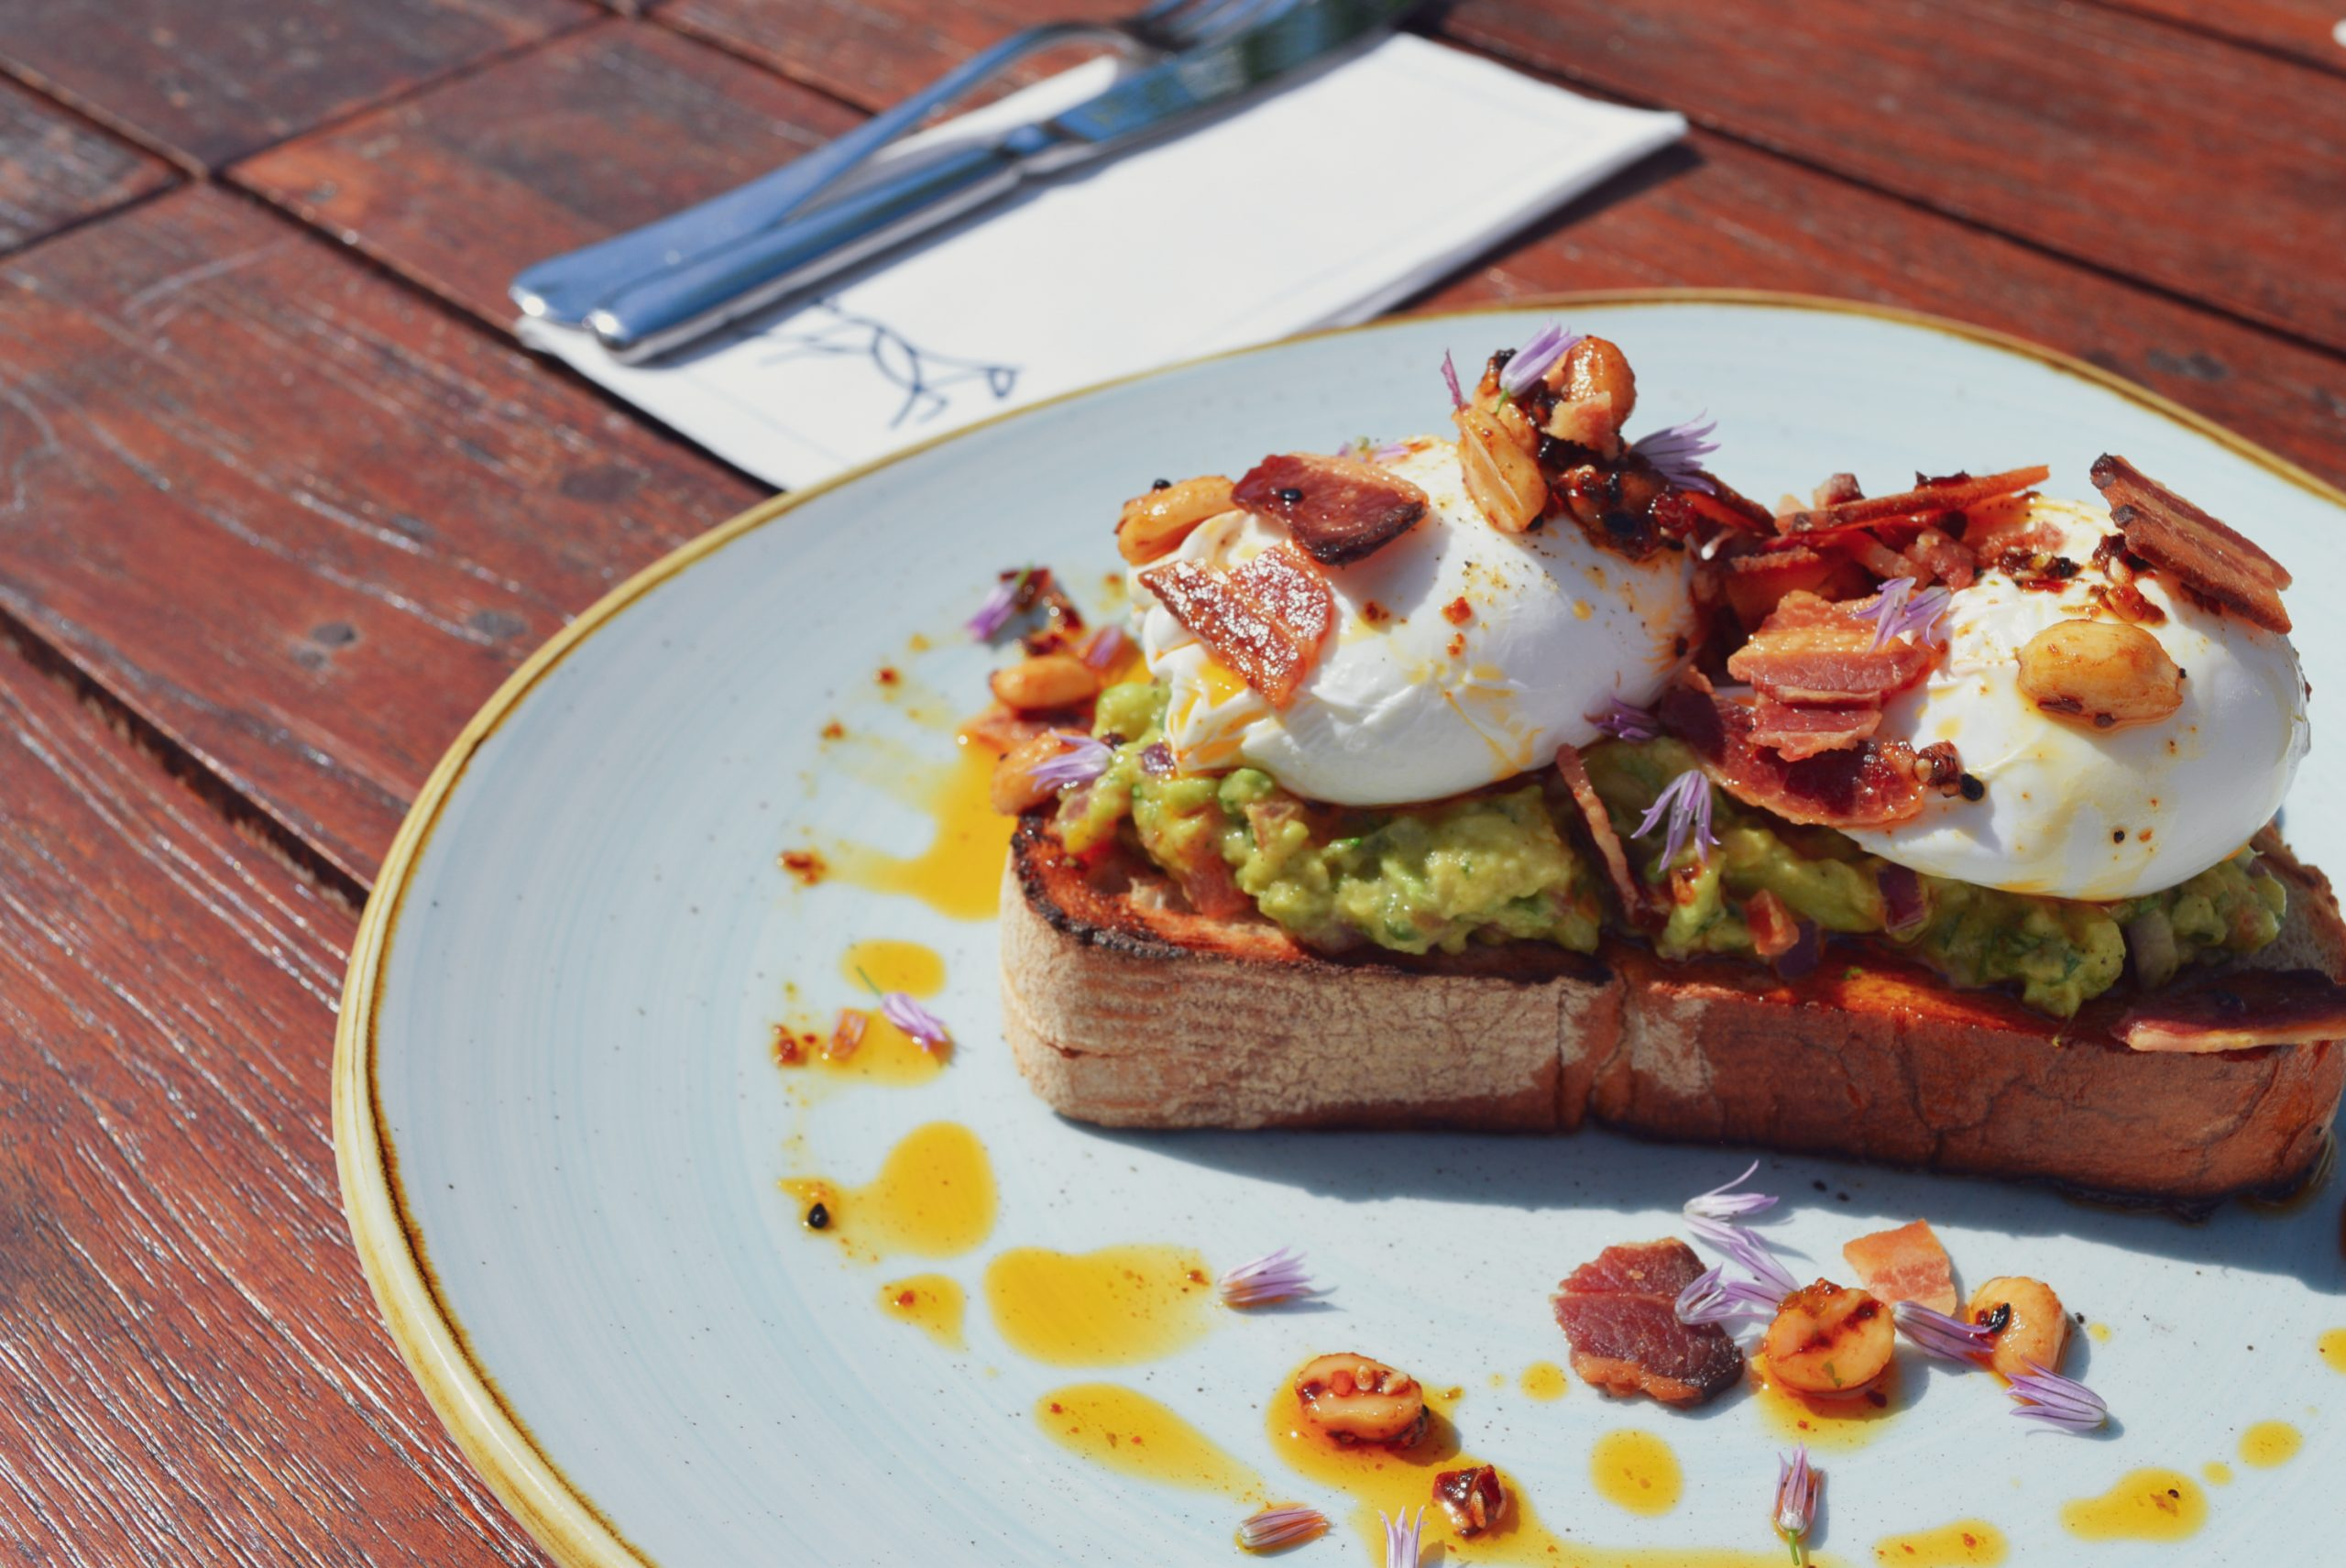 Mikey Ryan's Avocado & Poached Eggs on Toast with Peanut Rayu and Crispy Bacon by Chef Stephen Hayes